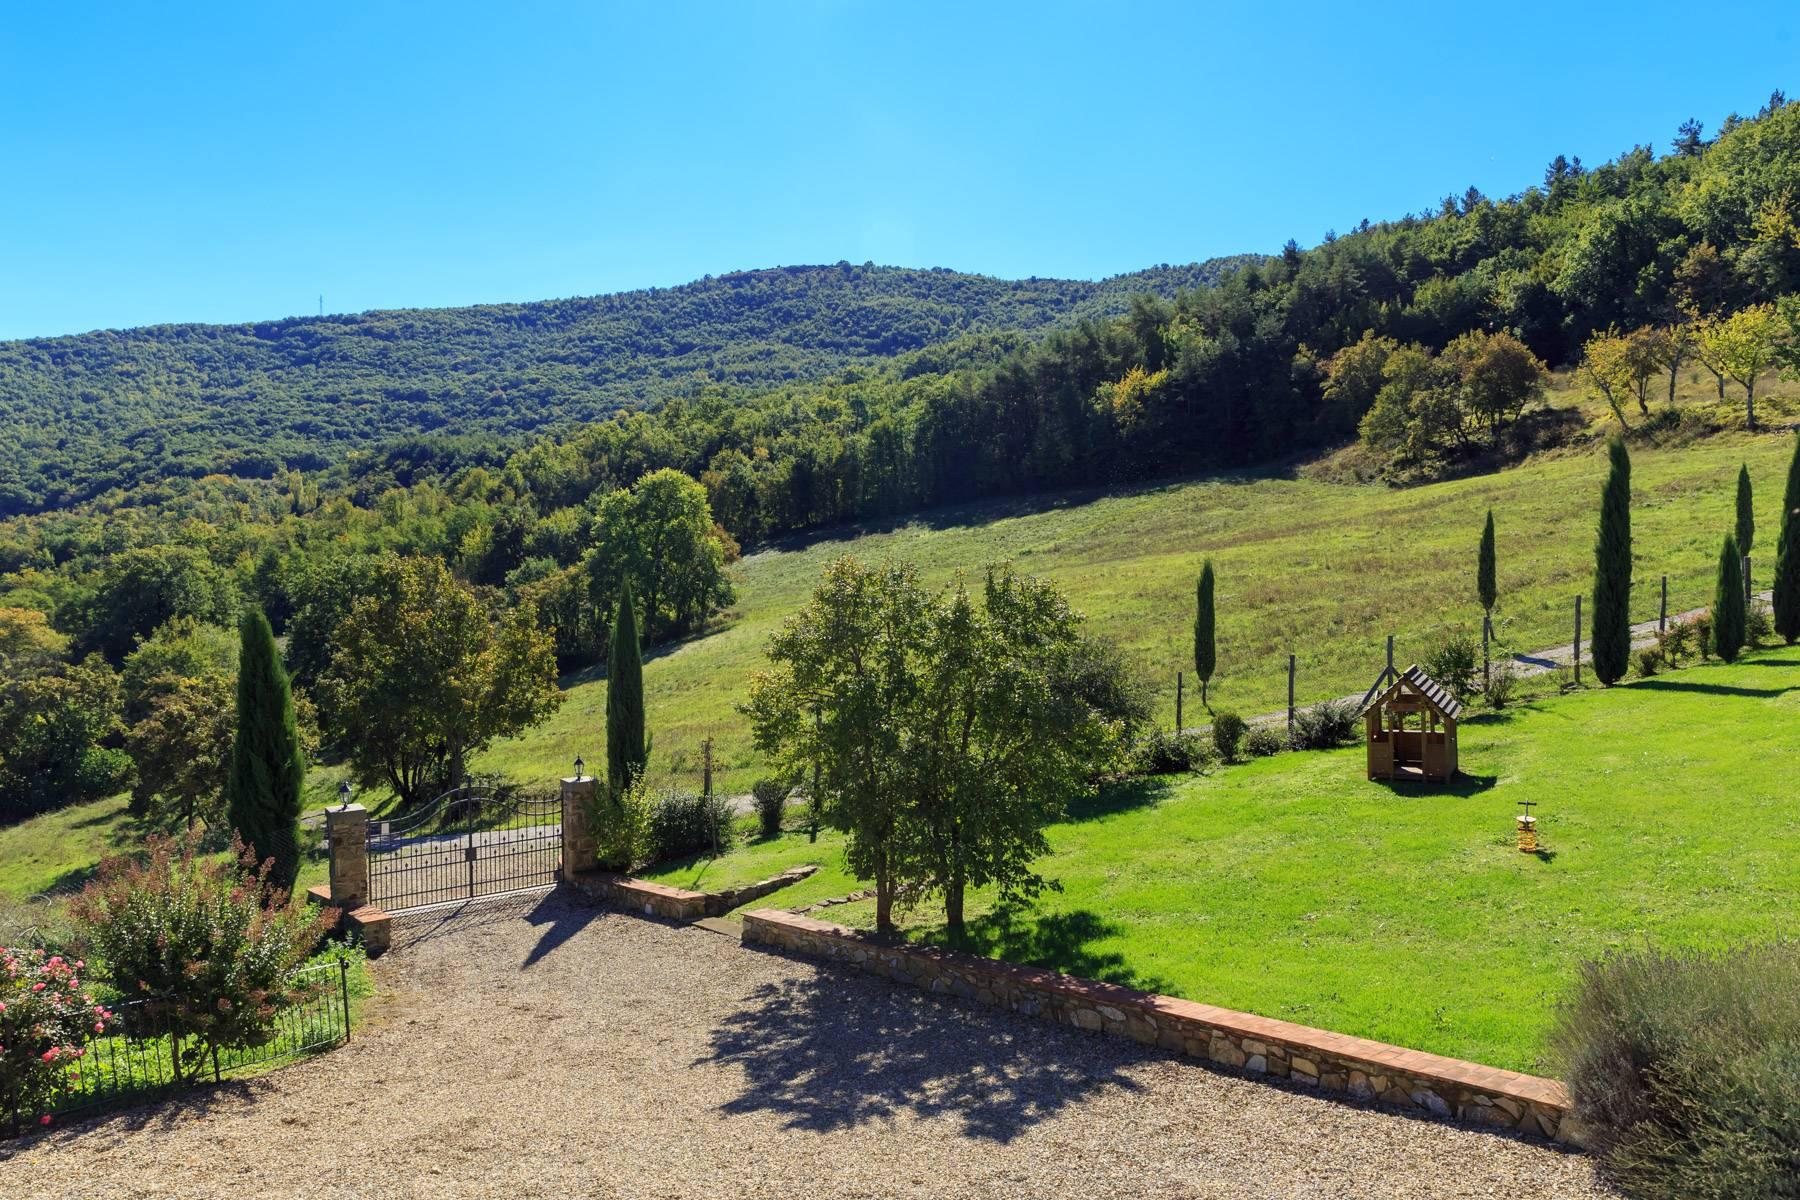 Marvelous estate with views over the Casentino valley - 35